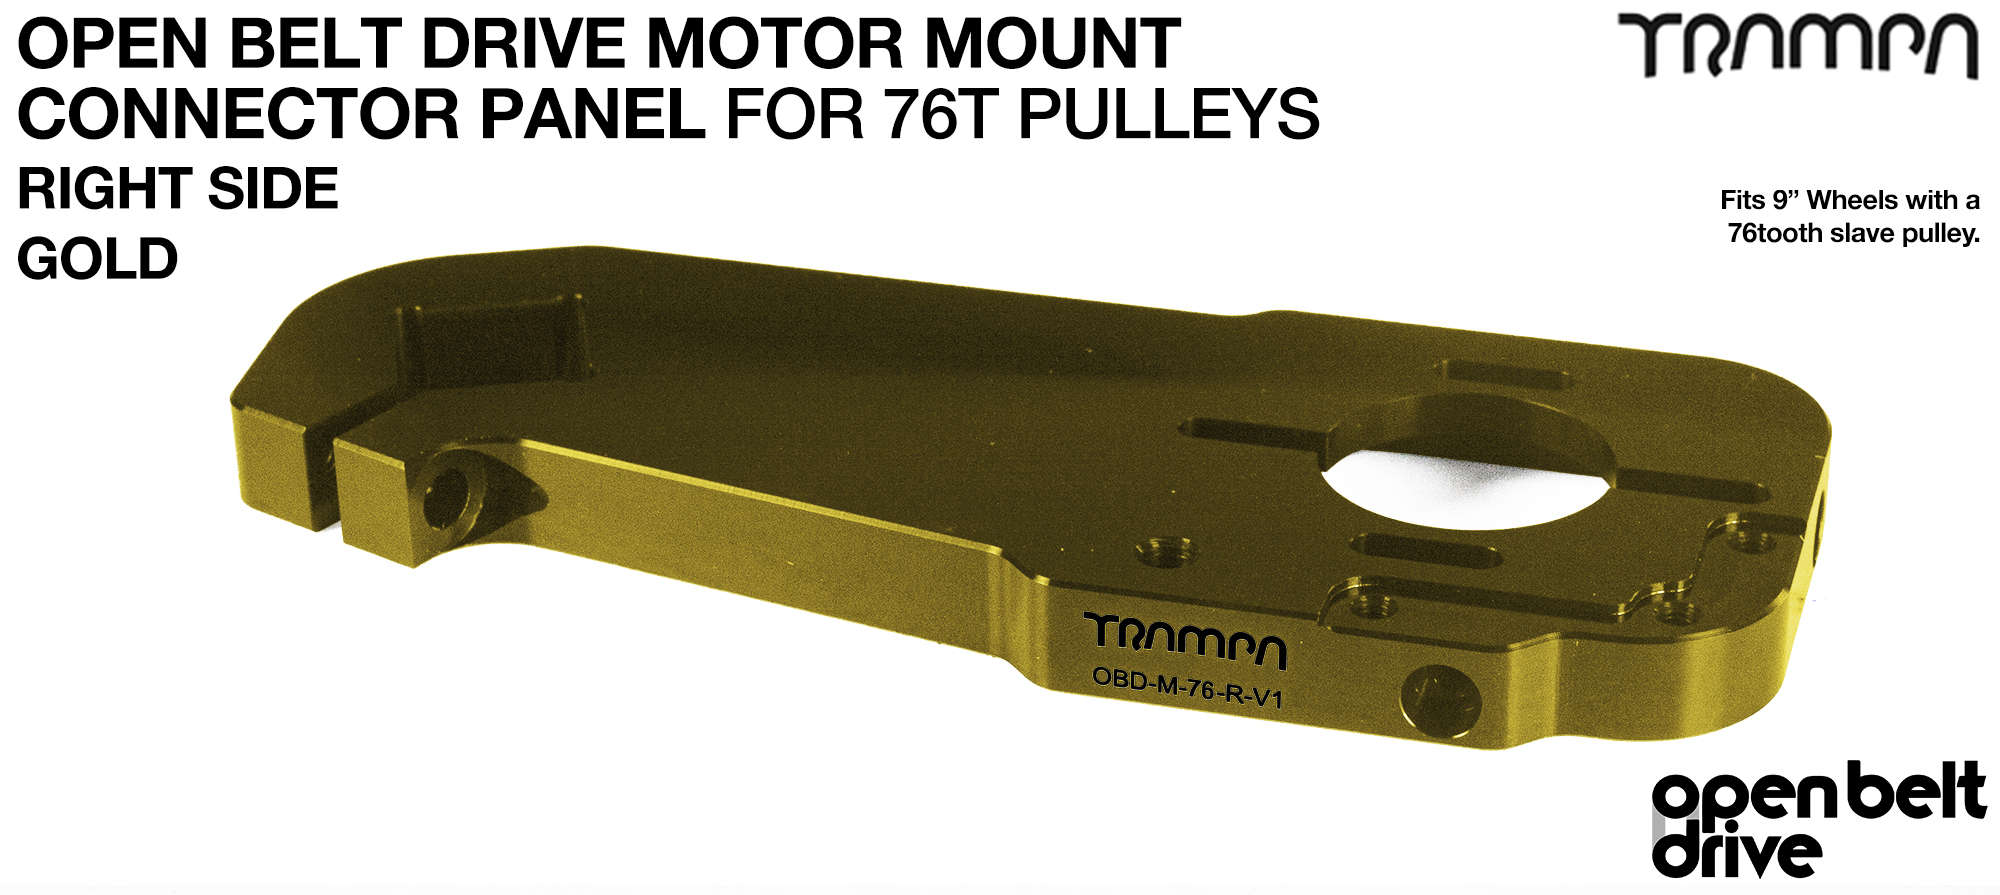 OBD Motor Mount Connector Panel for 76 tooth Pulleys - GOOFY - GOLD